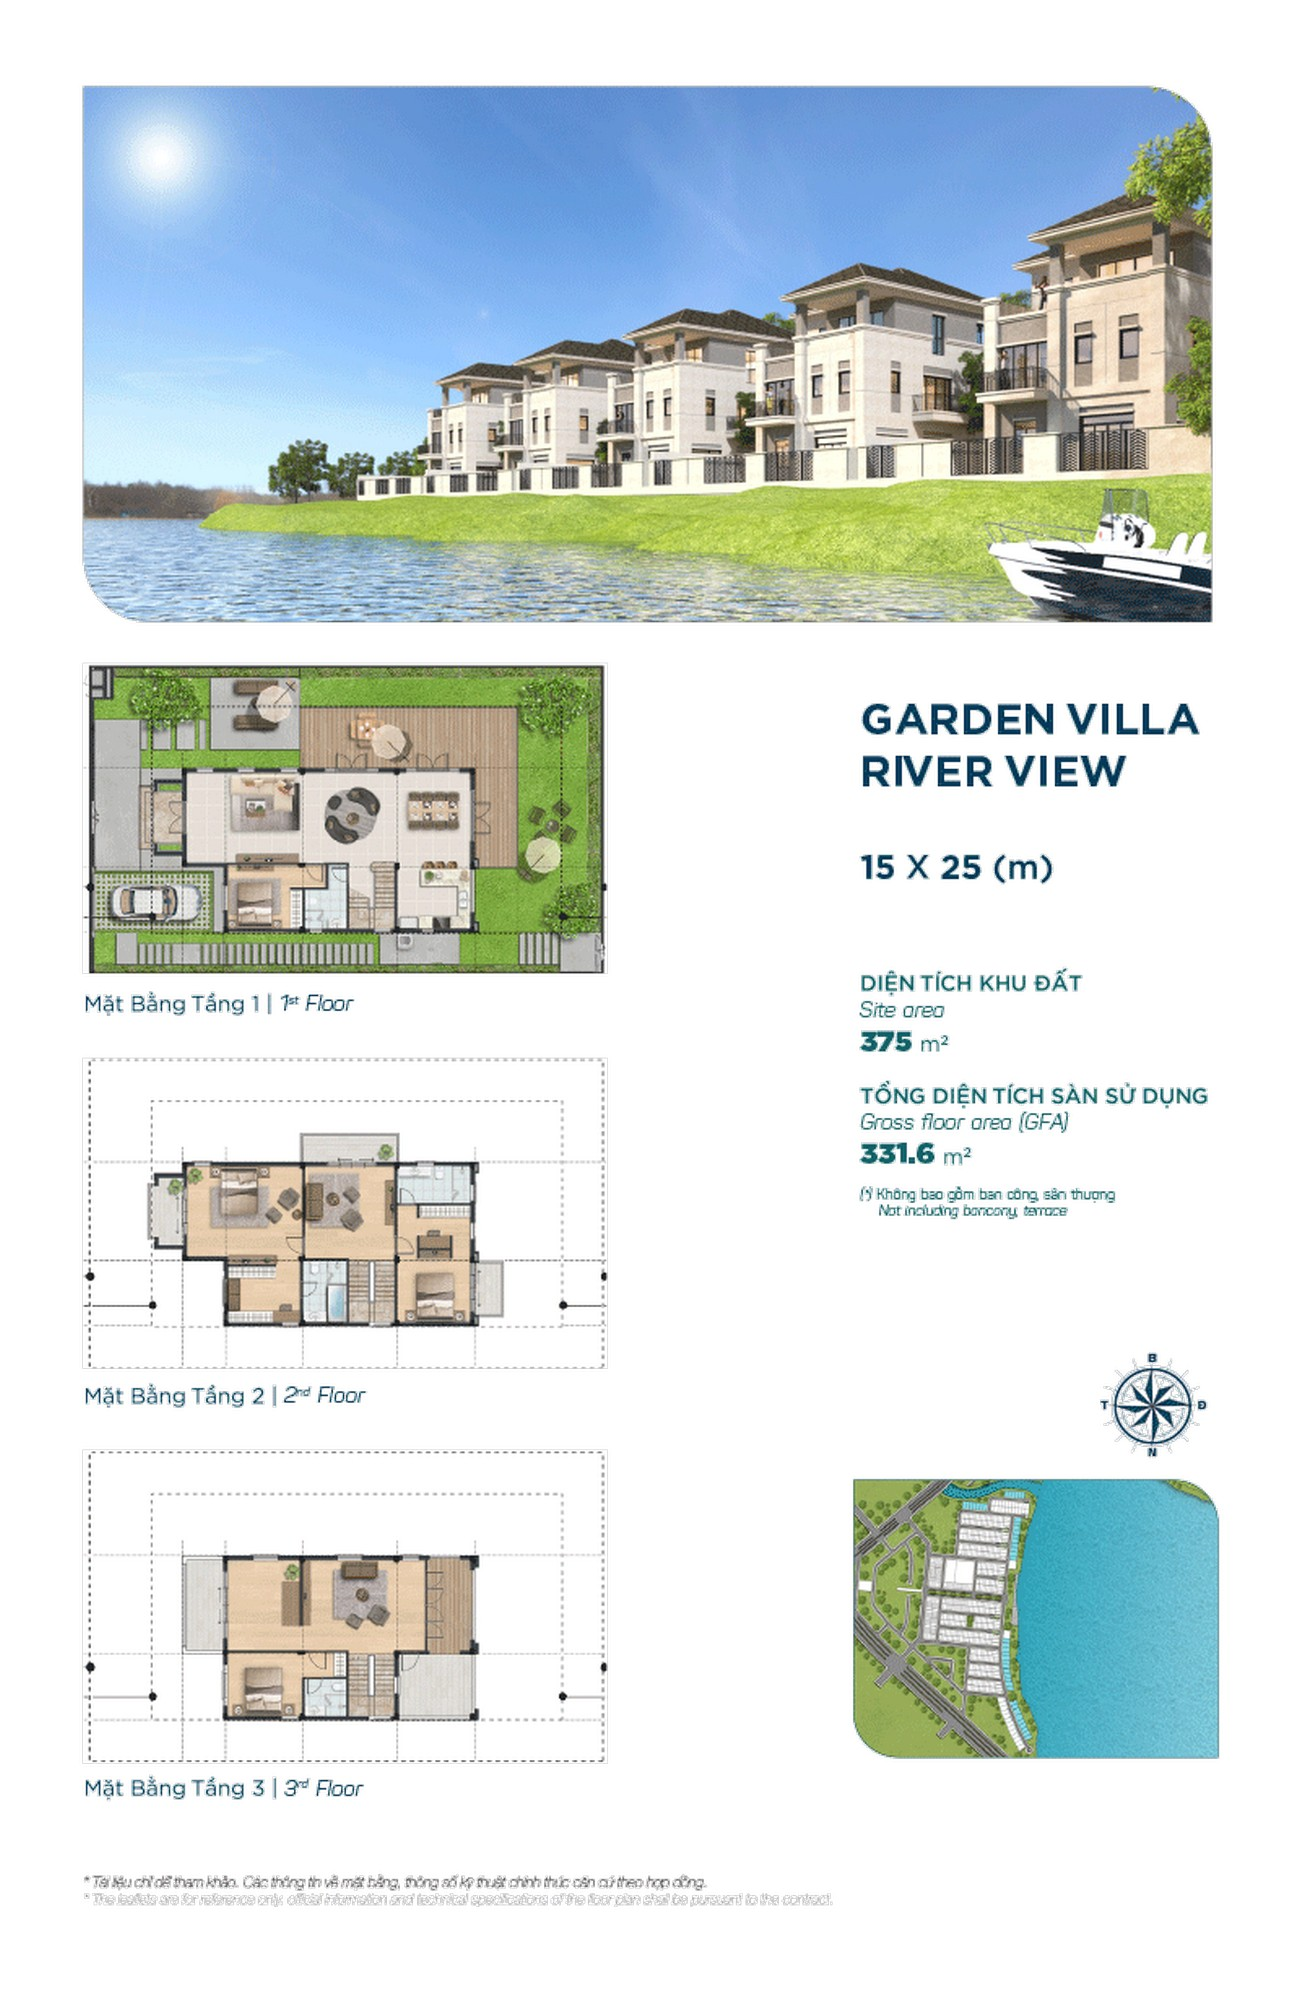 Garden Villa River View 15x25m - Dự án Aqua City The Elite